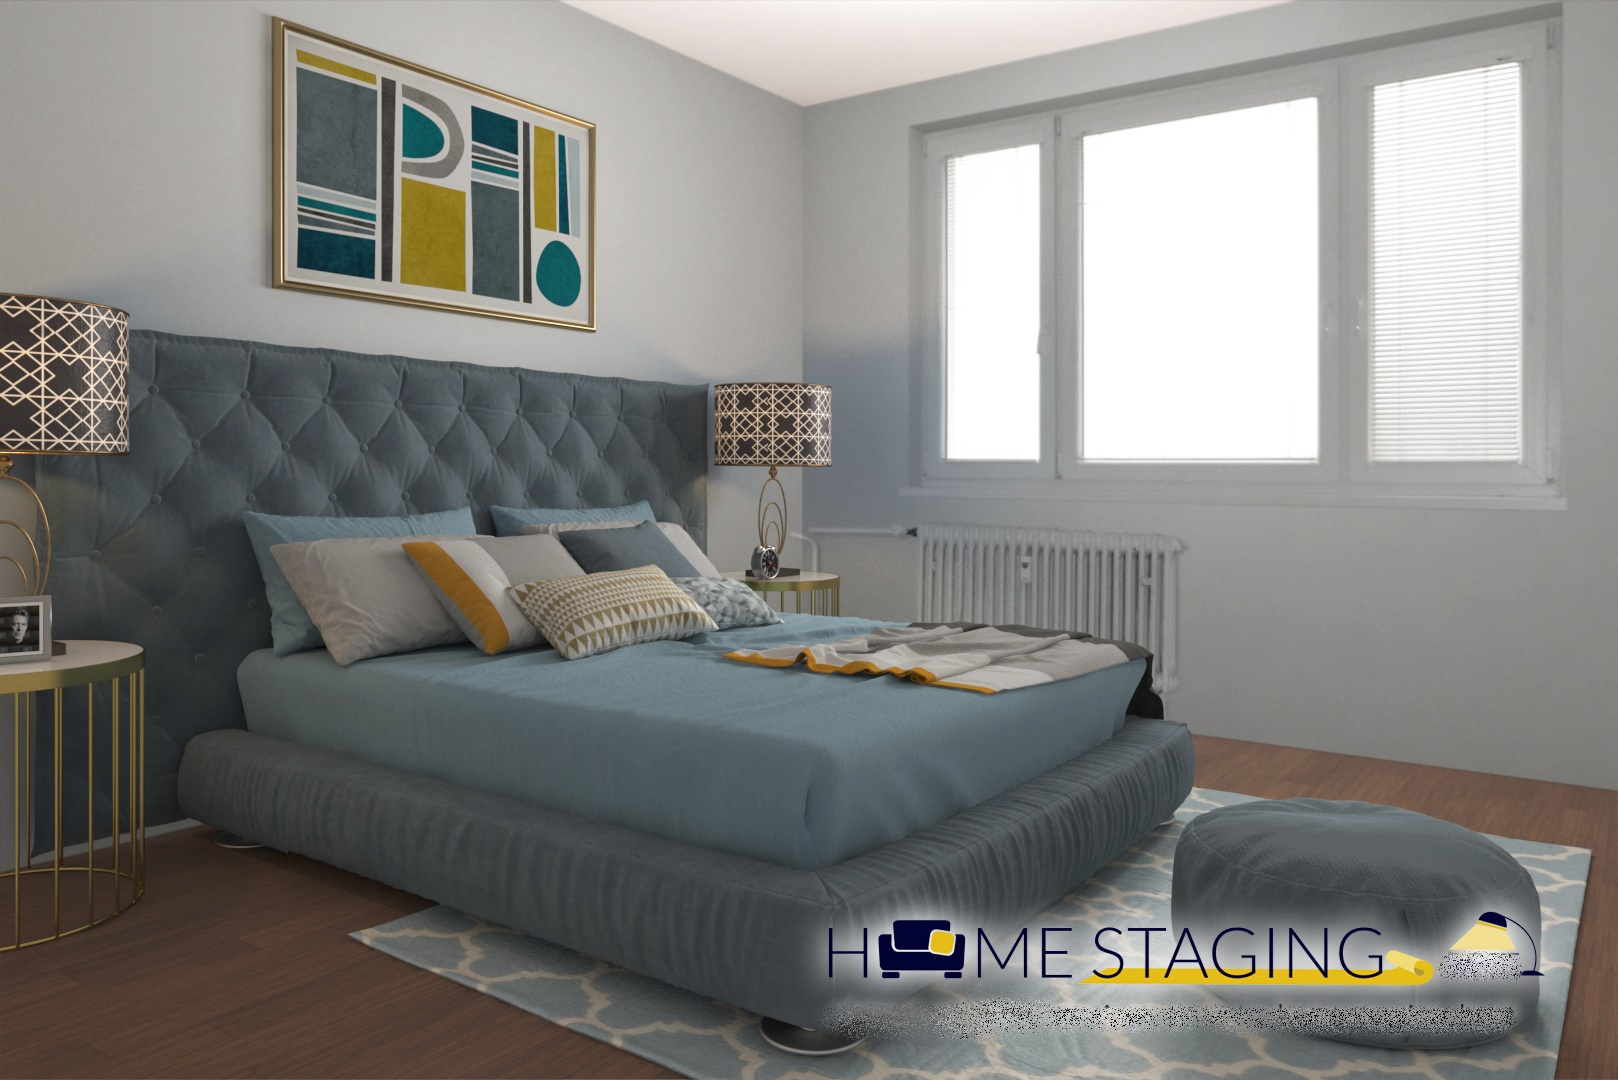 Home Staging- vizualizacia